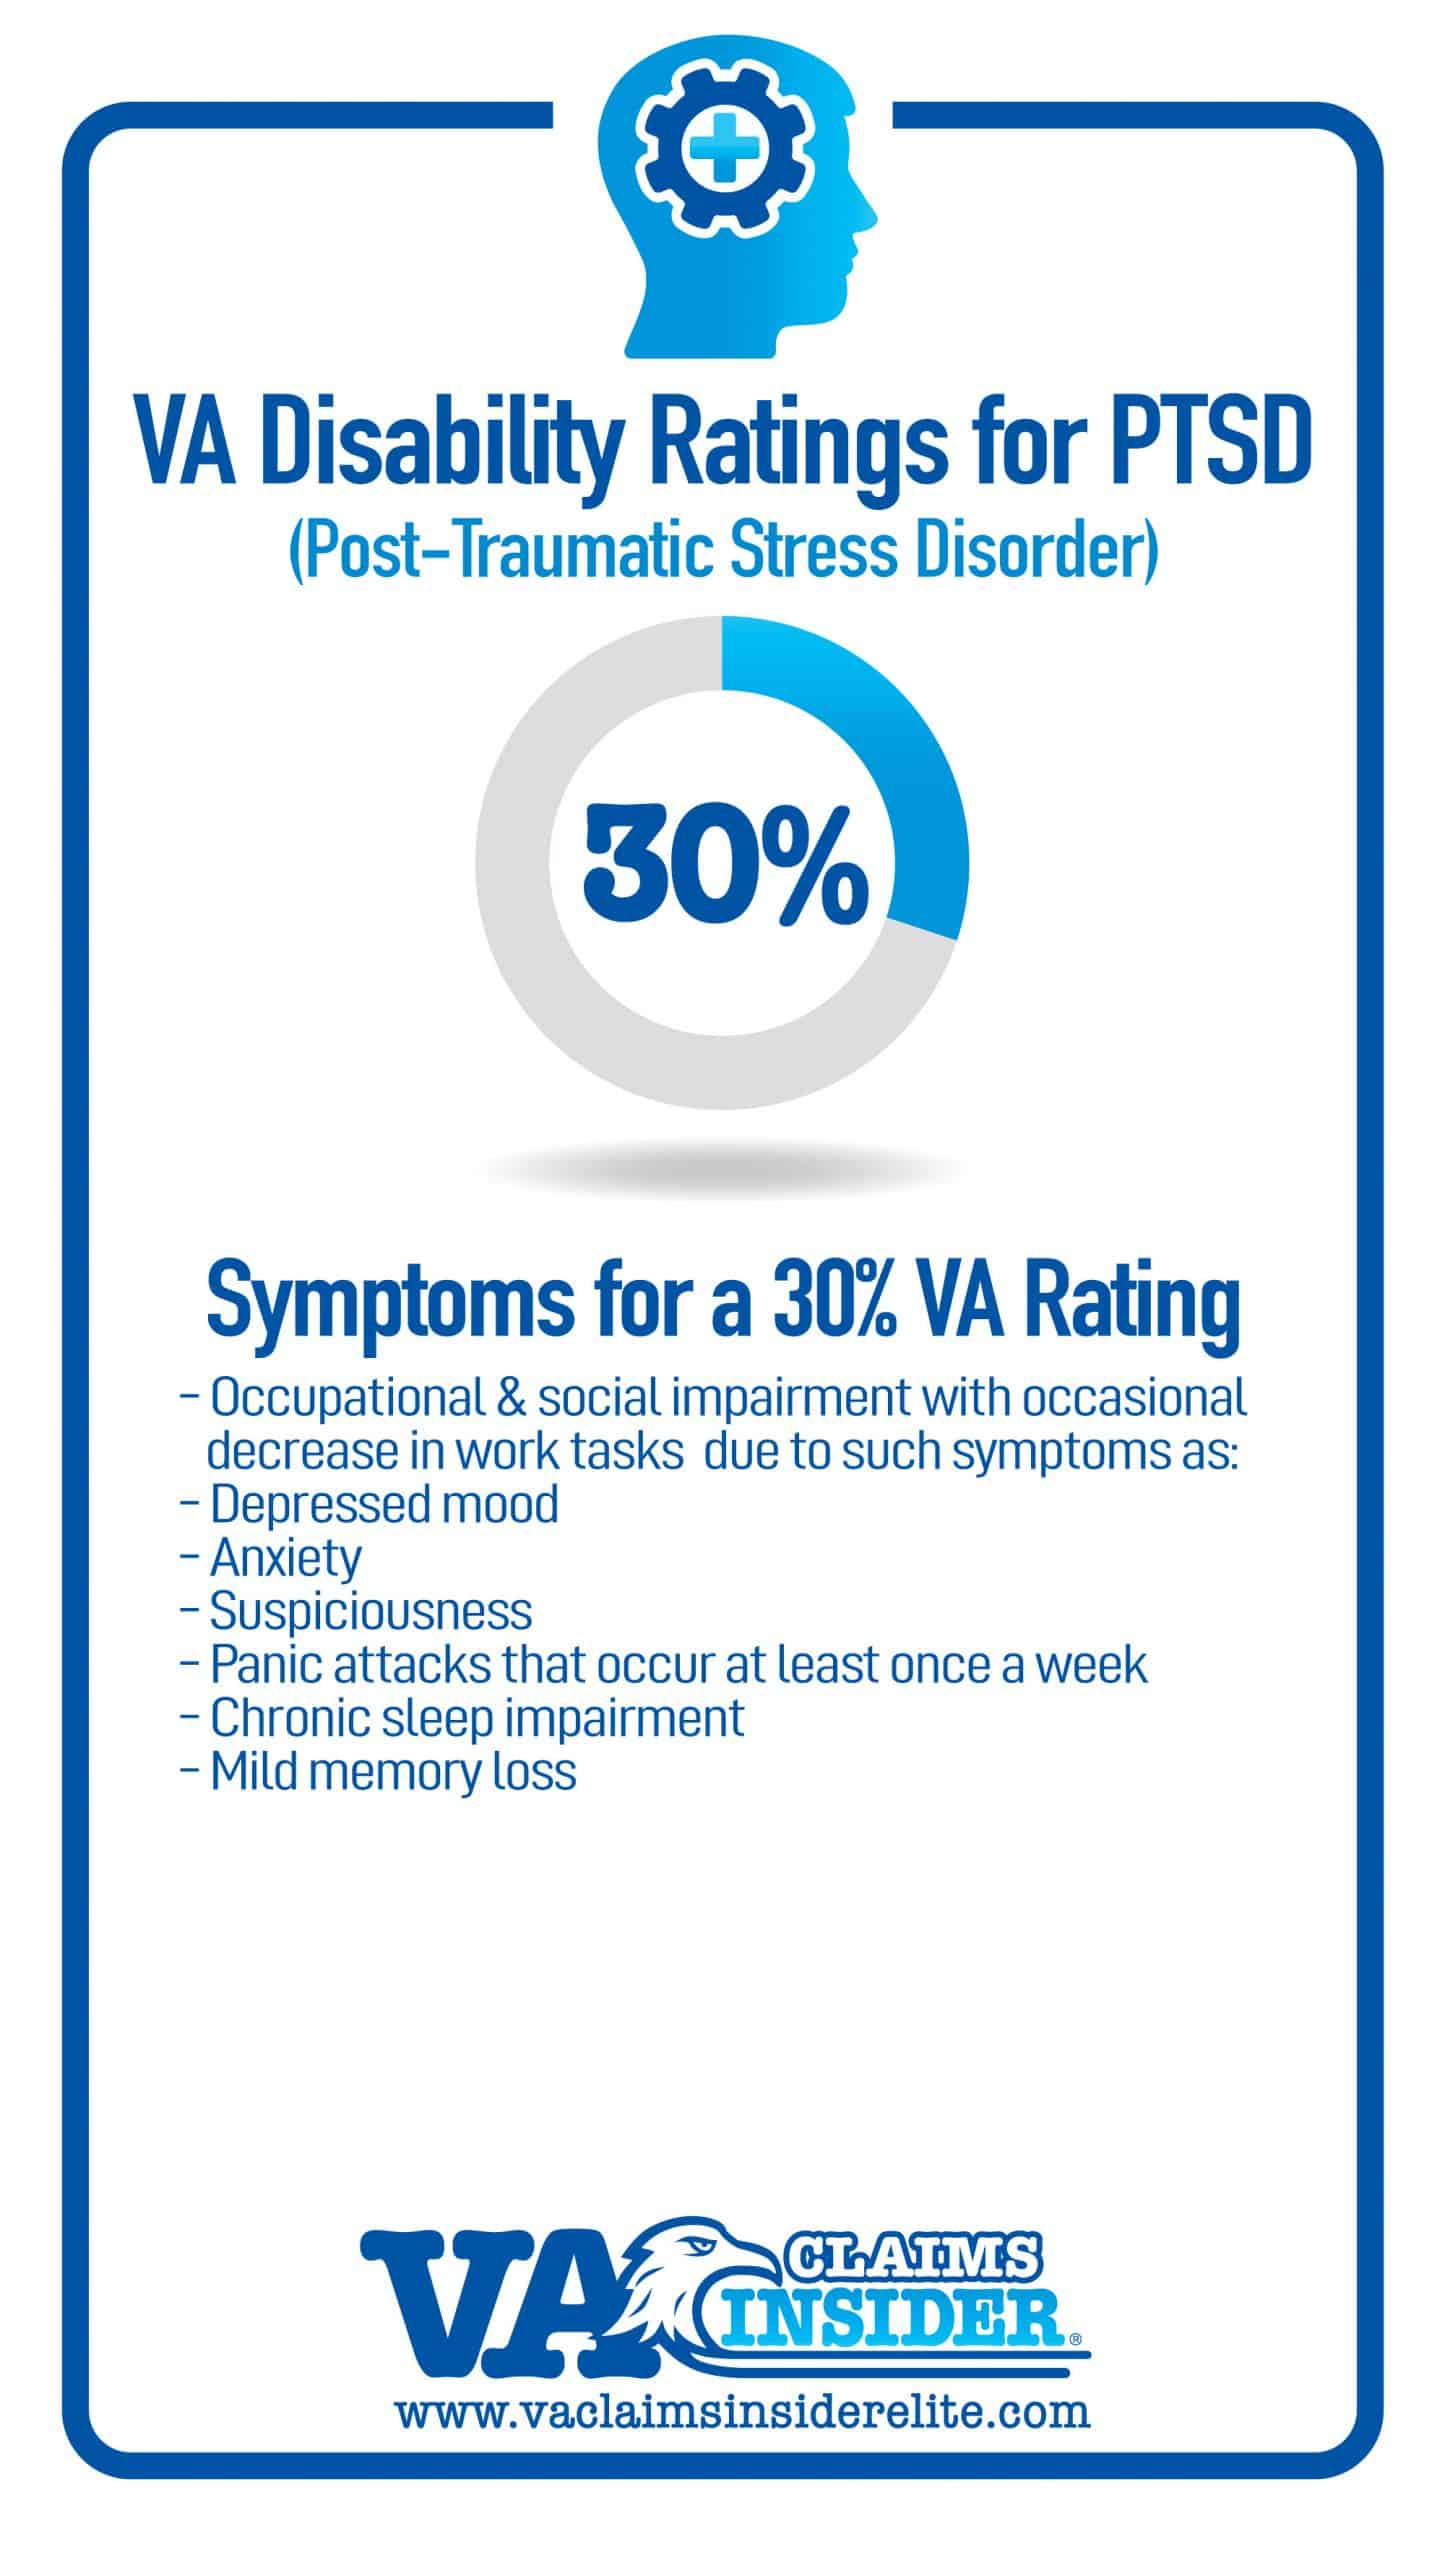 Symptoms of 30 Percent VA Rating for PTSD